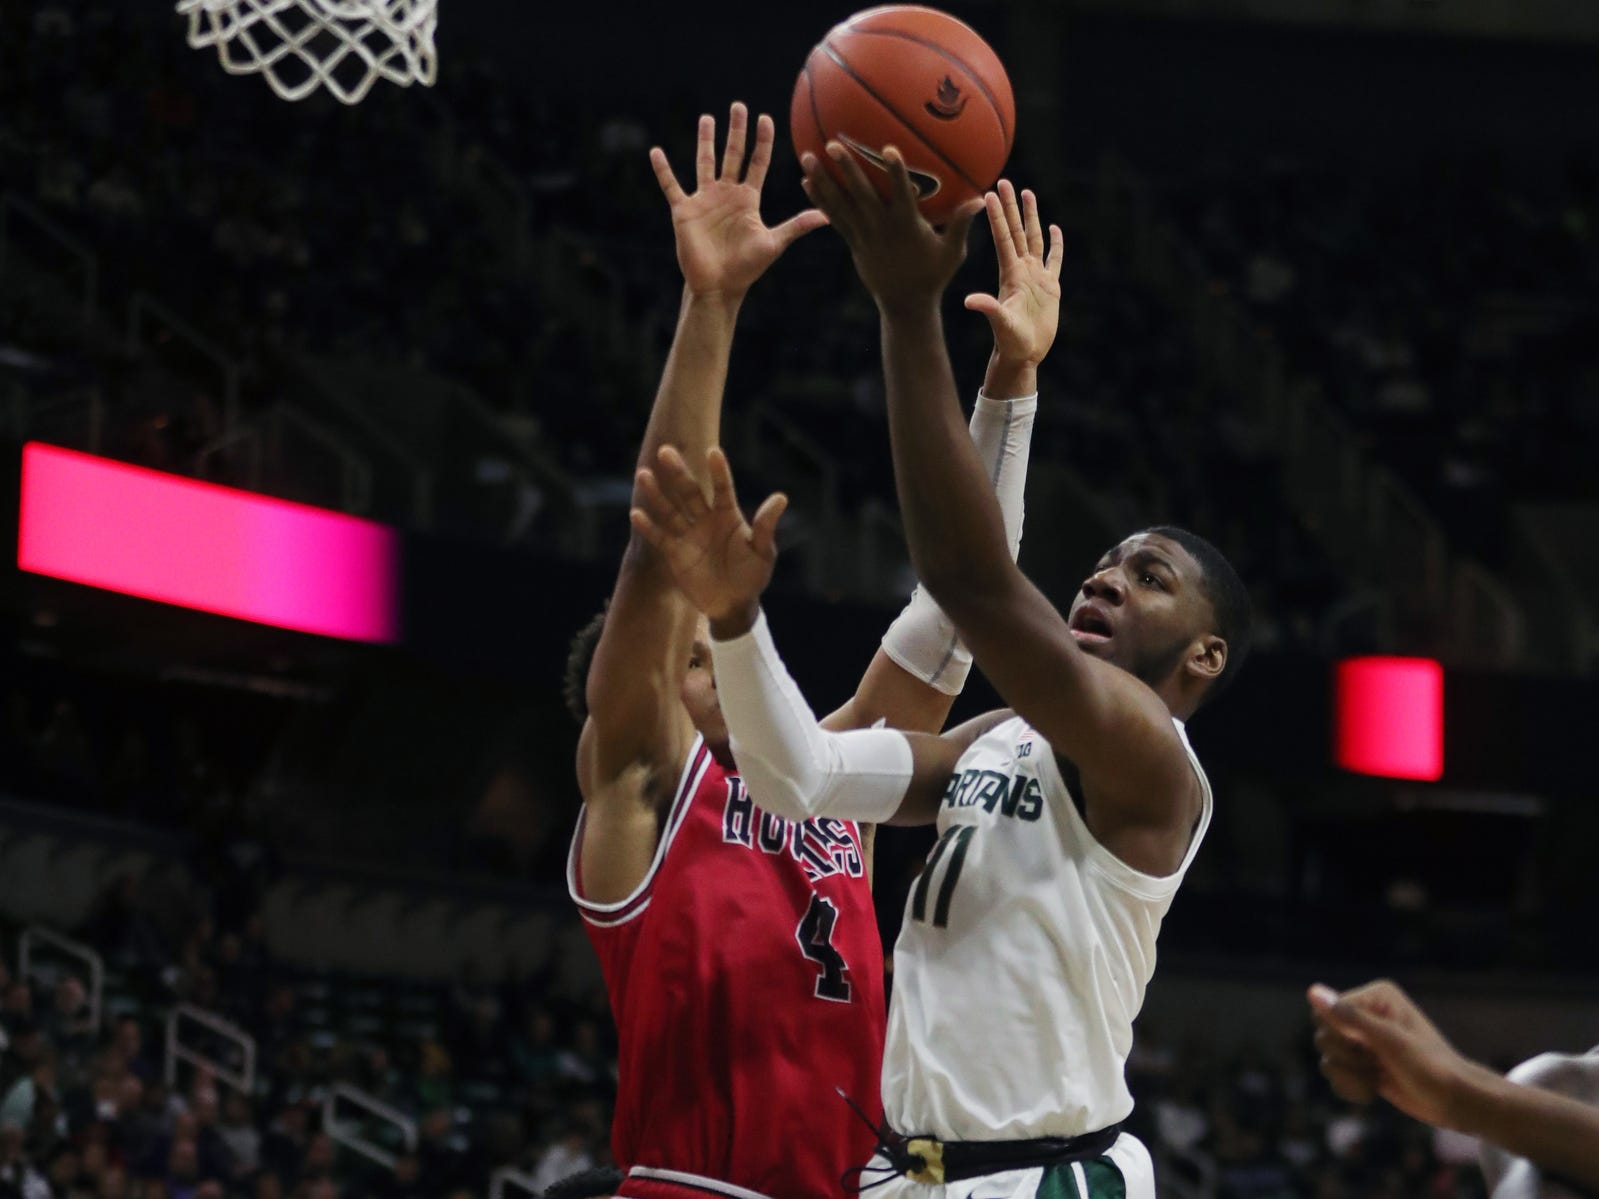 Michigan State forward Aaron Henry scores against Northern Illinois forward Lacey James during the second half Saturday, Dec. 29, 2018 at the Breslin Center in East Lansing.